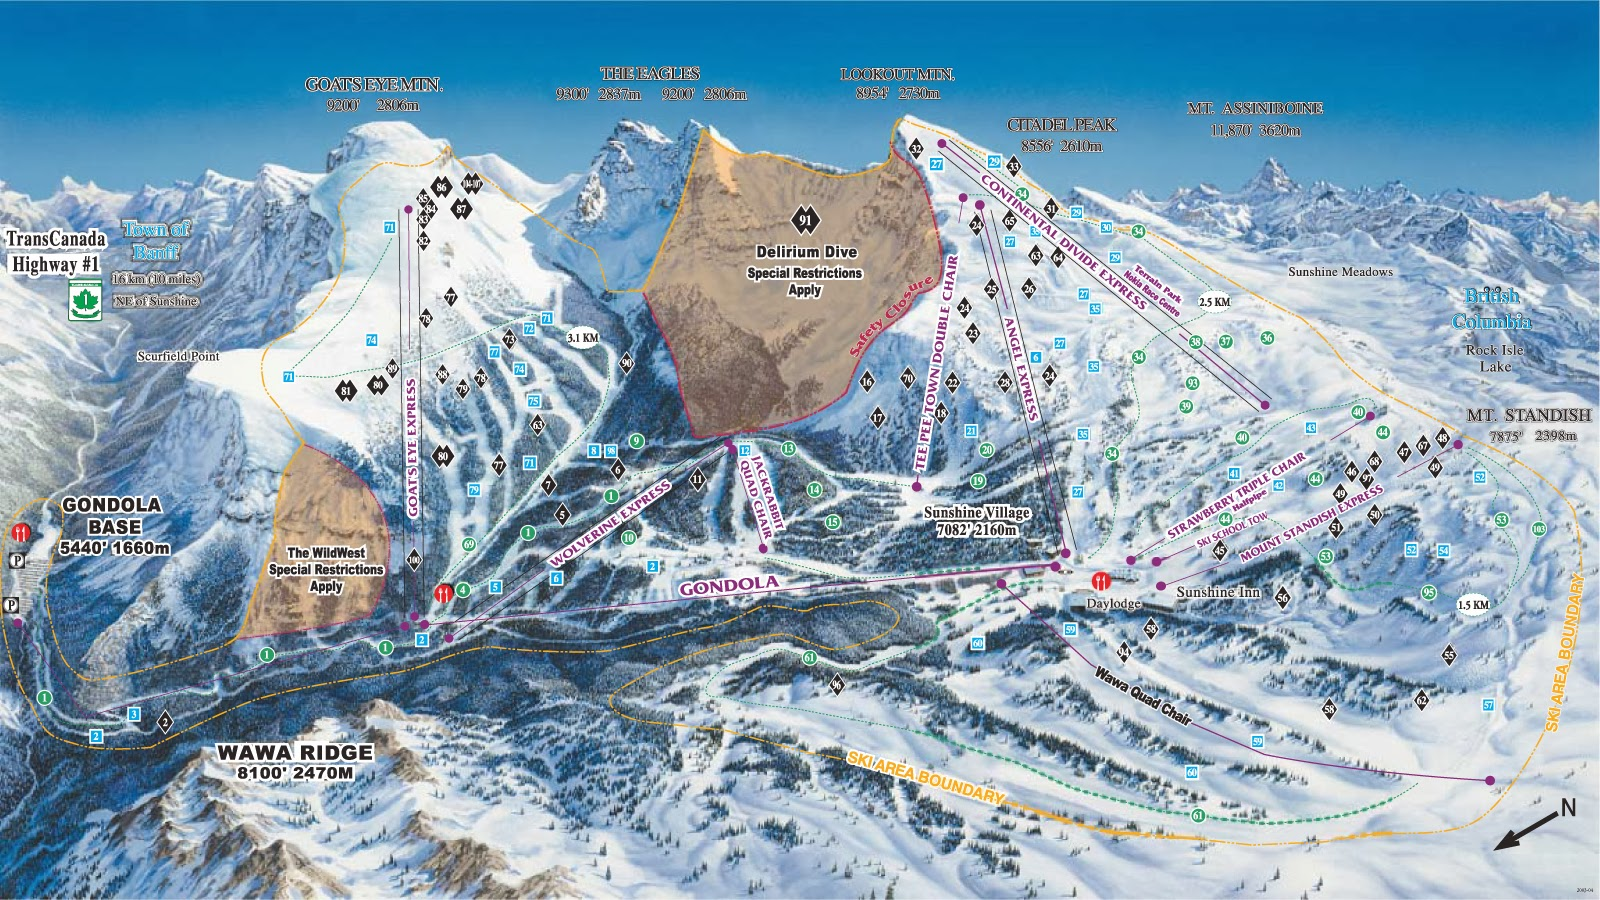 Banff Sunshine Village Ski Resort, Banff, Alberta - Where is the Best Place for Skiing And Snowboarding in Canada